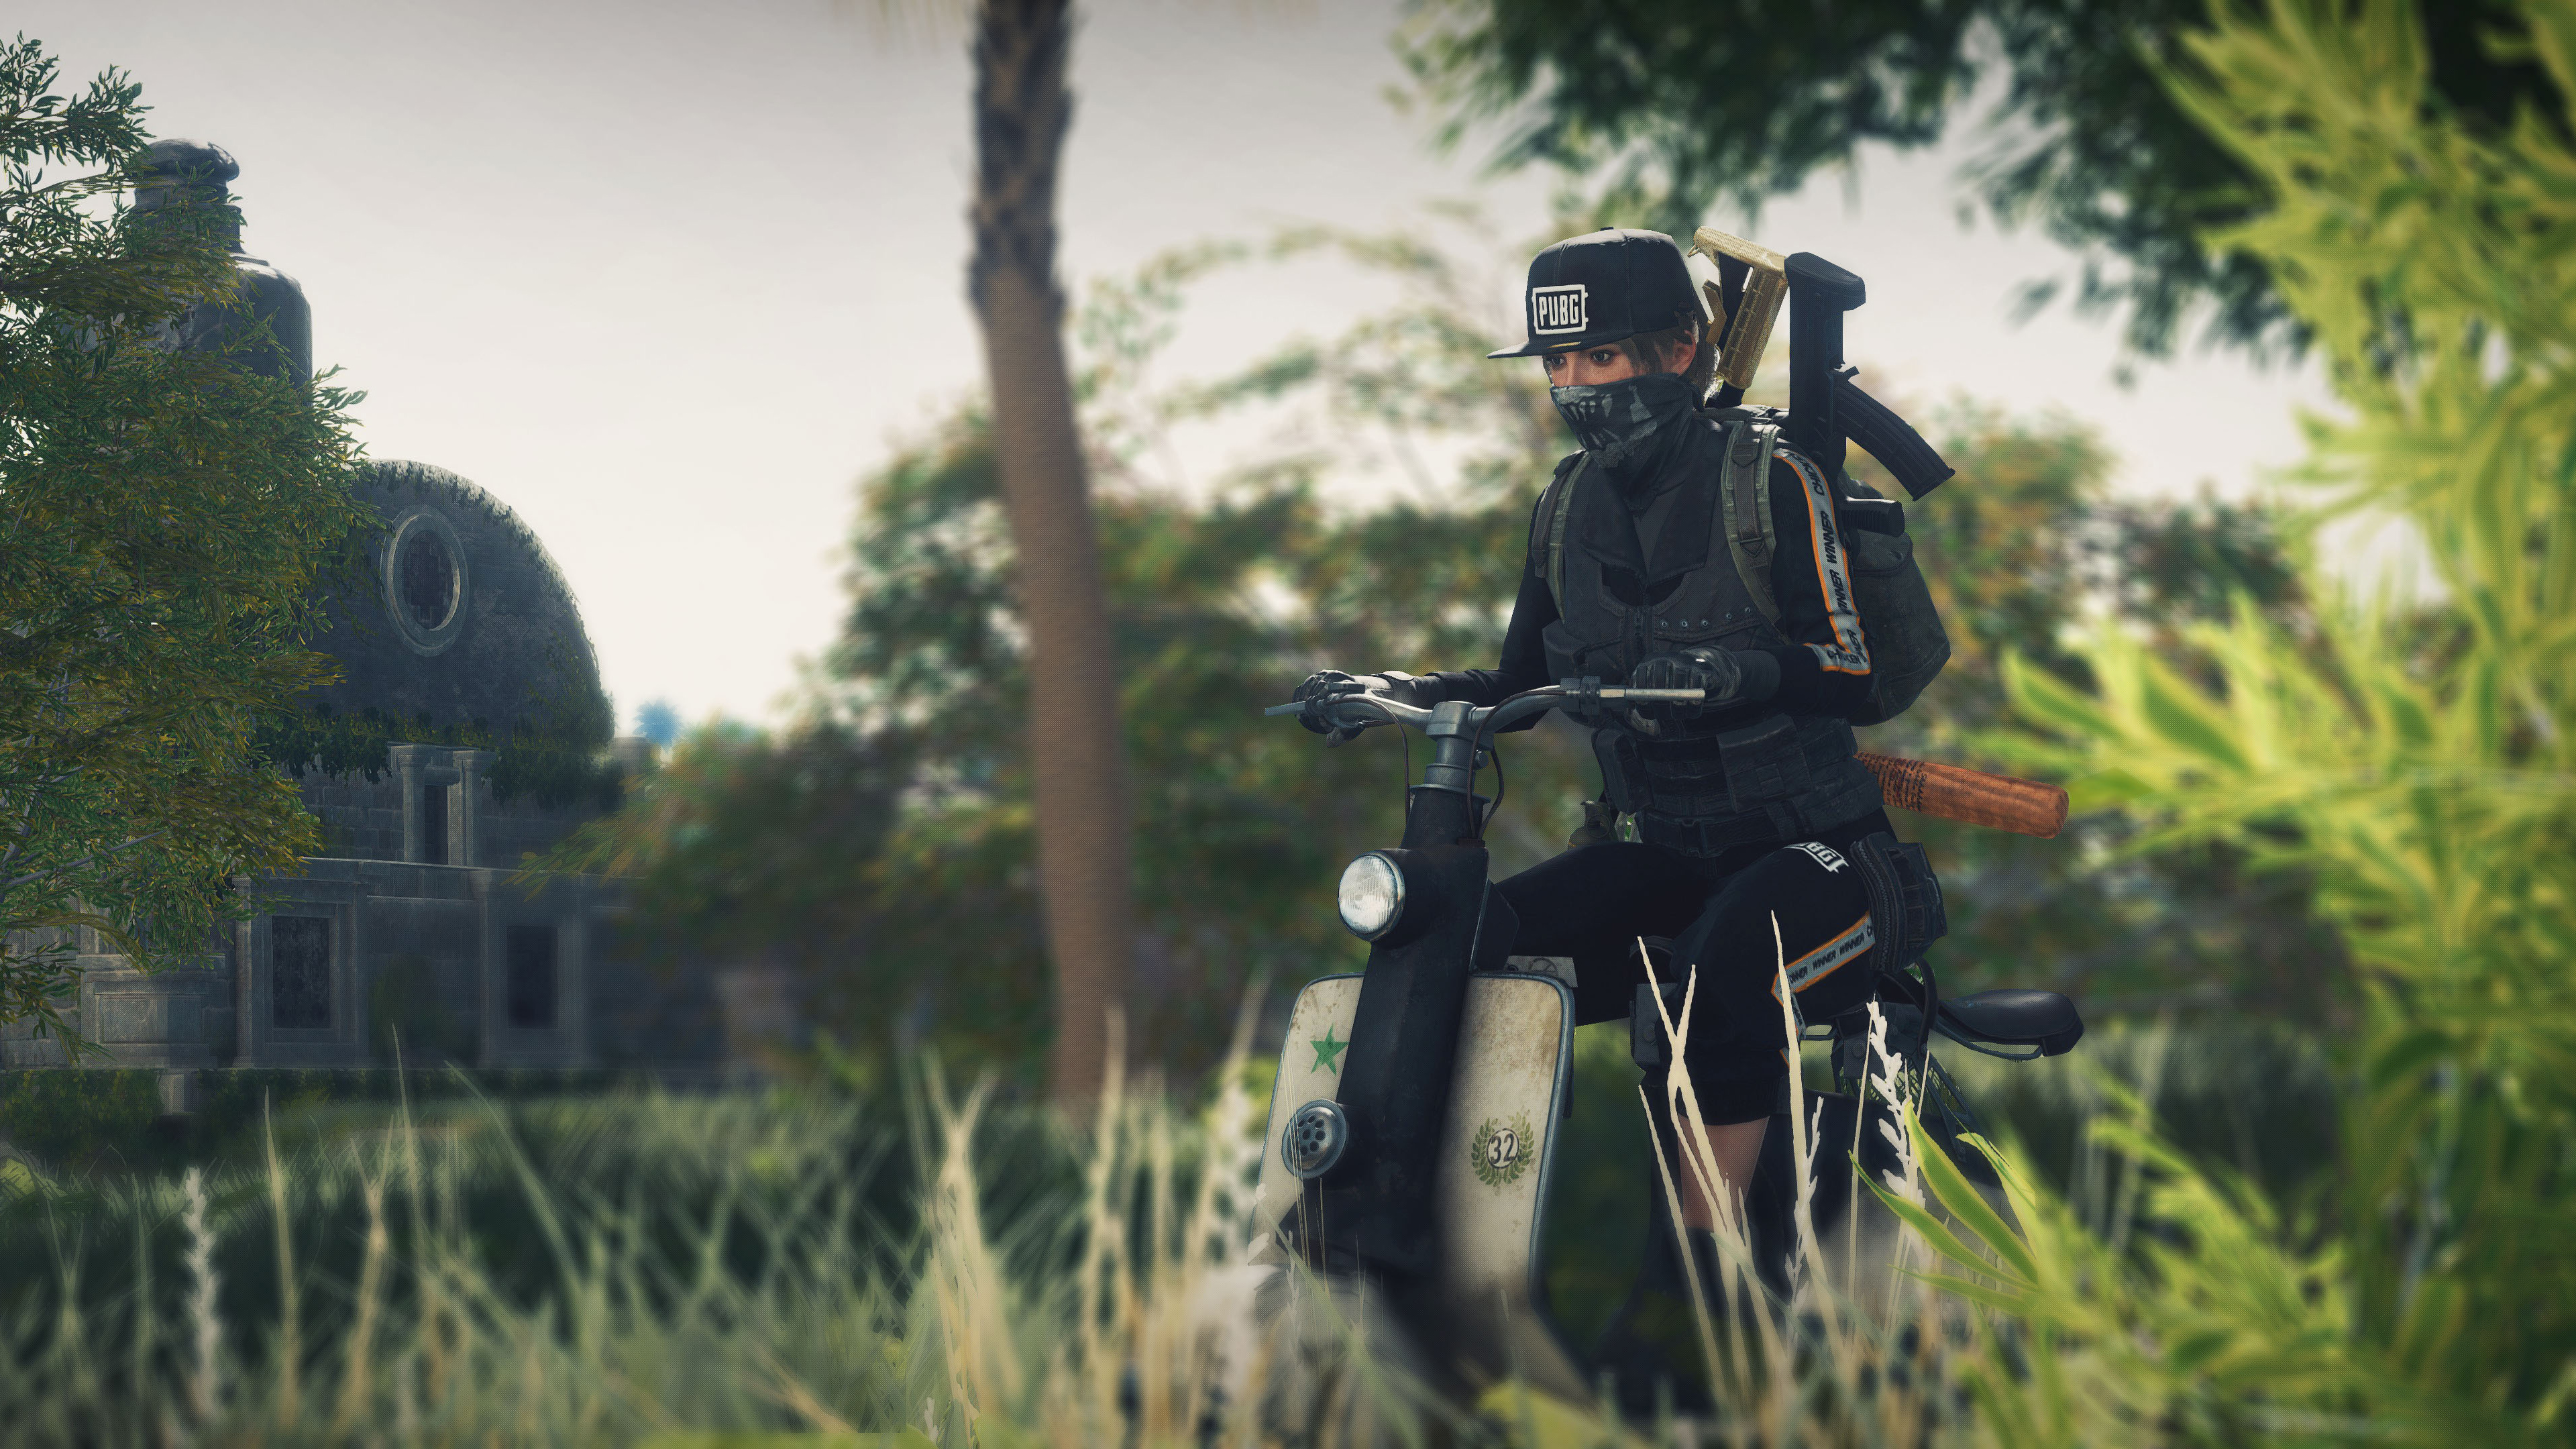 2048x1152 Pubg Bike Rider 4k 2048x1152 Resolution Hd 4k: Pubg Girl On Scooter, HD Games, 4k Wallpapers, Images